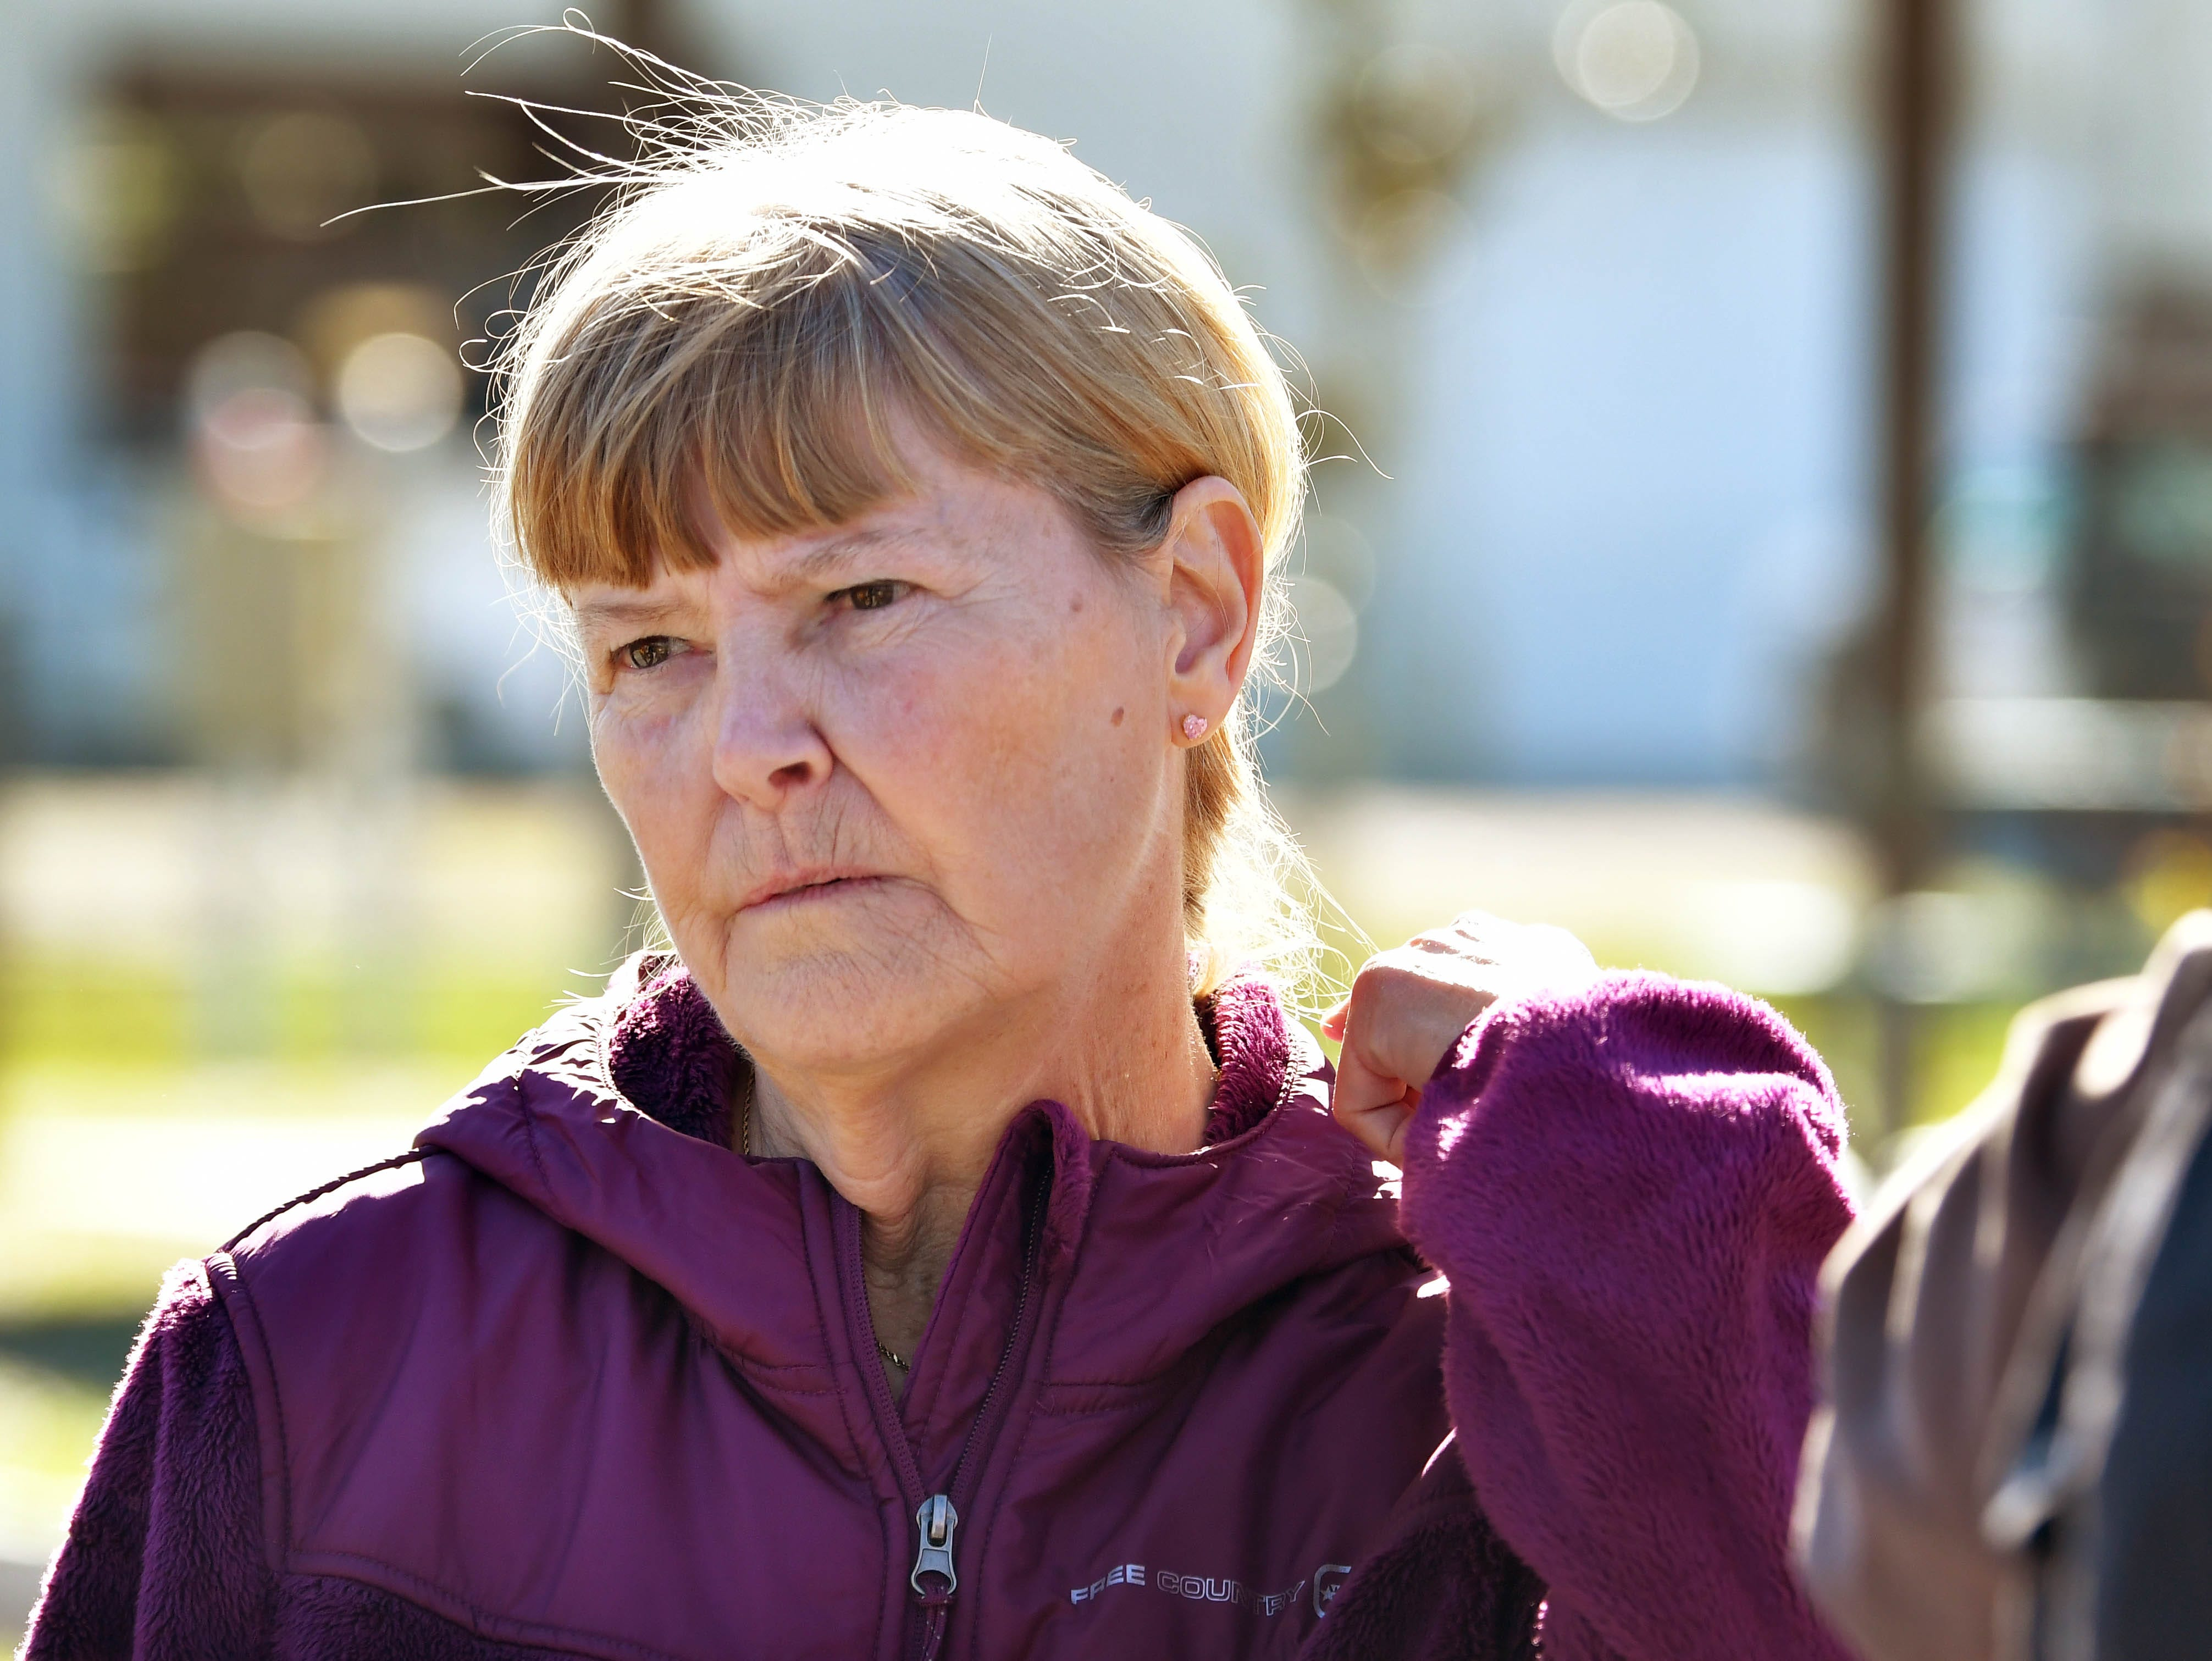 Debbie Rogge, mother of Brandy Hall, attended the search. On Wednesday, renewed searches began in Malabar and Palm Bay for the remains of missing firefighter Brandy Hall, who disappeared more than 12 years ago.